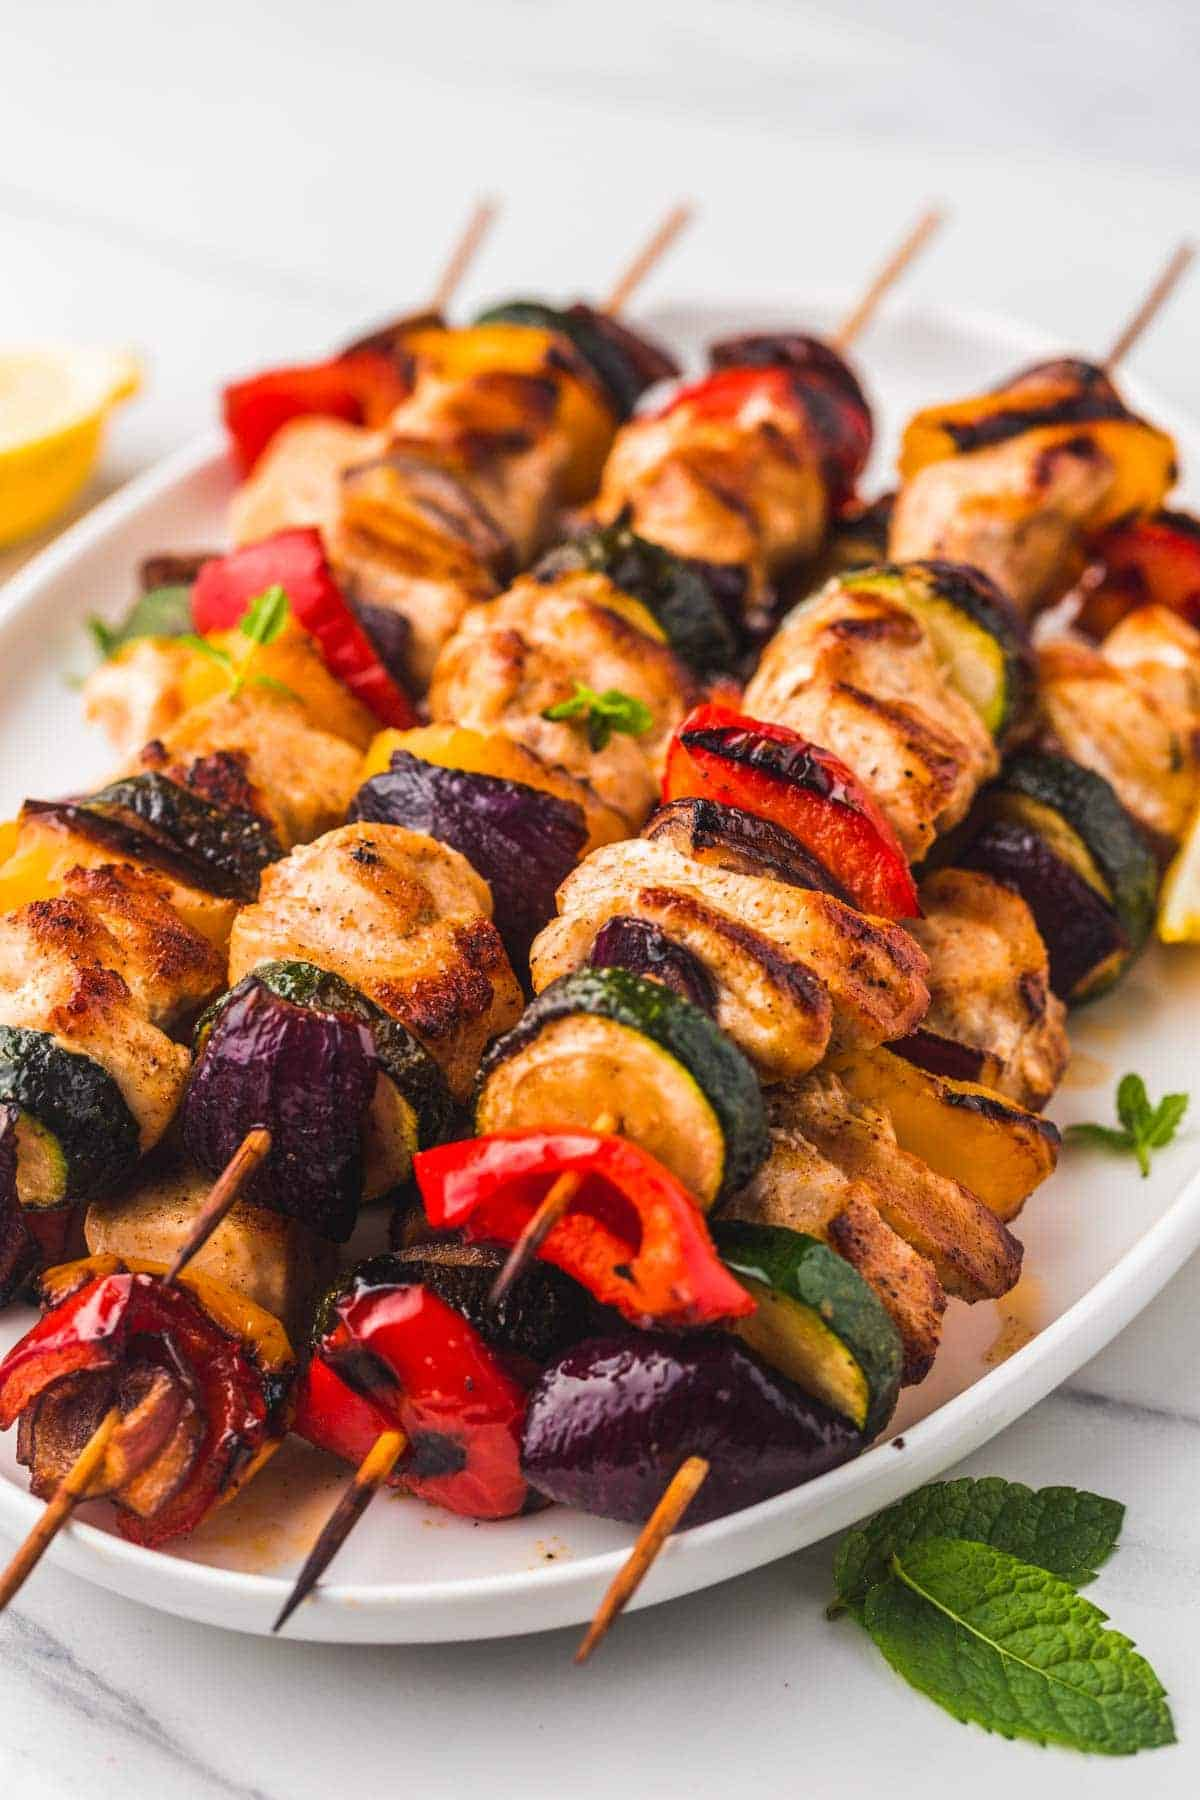 Grilled Chicken Kabobs stacked on an oval serving plate